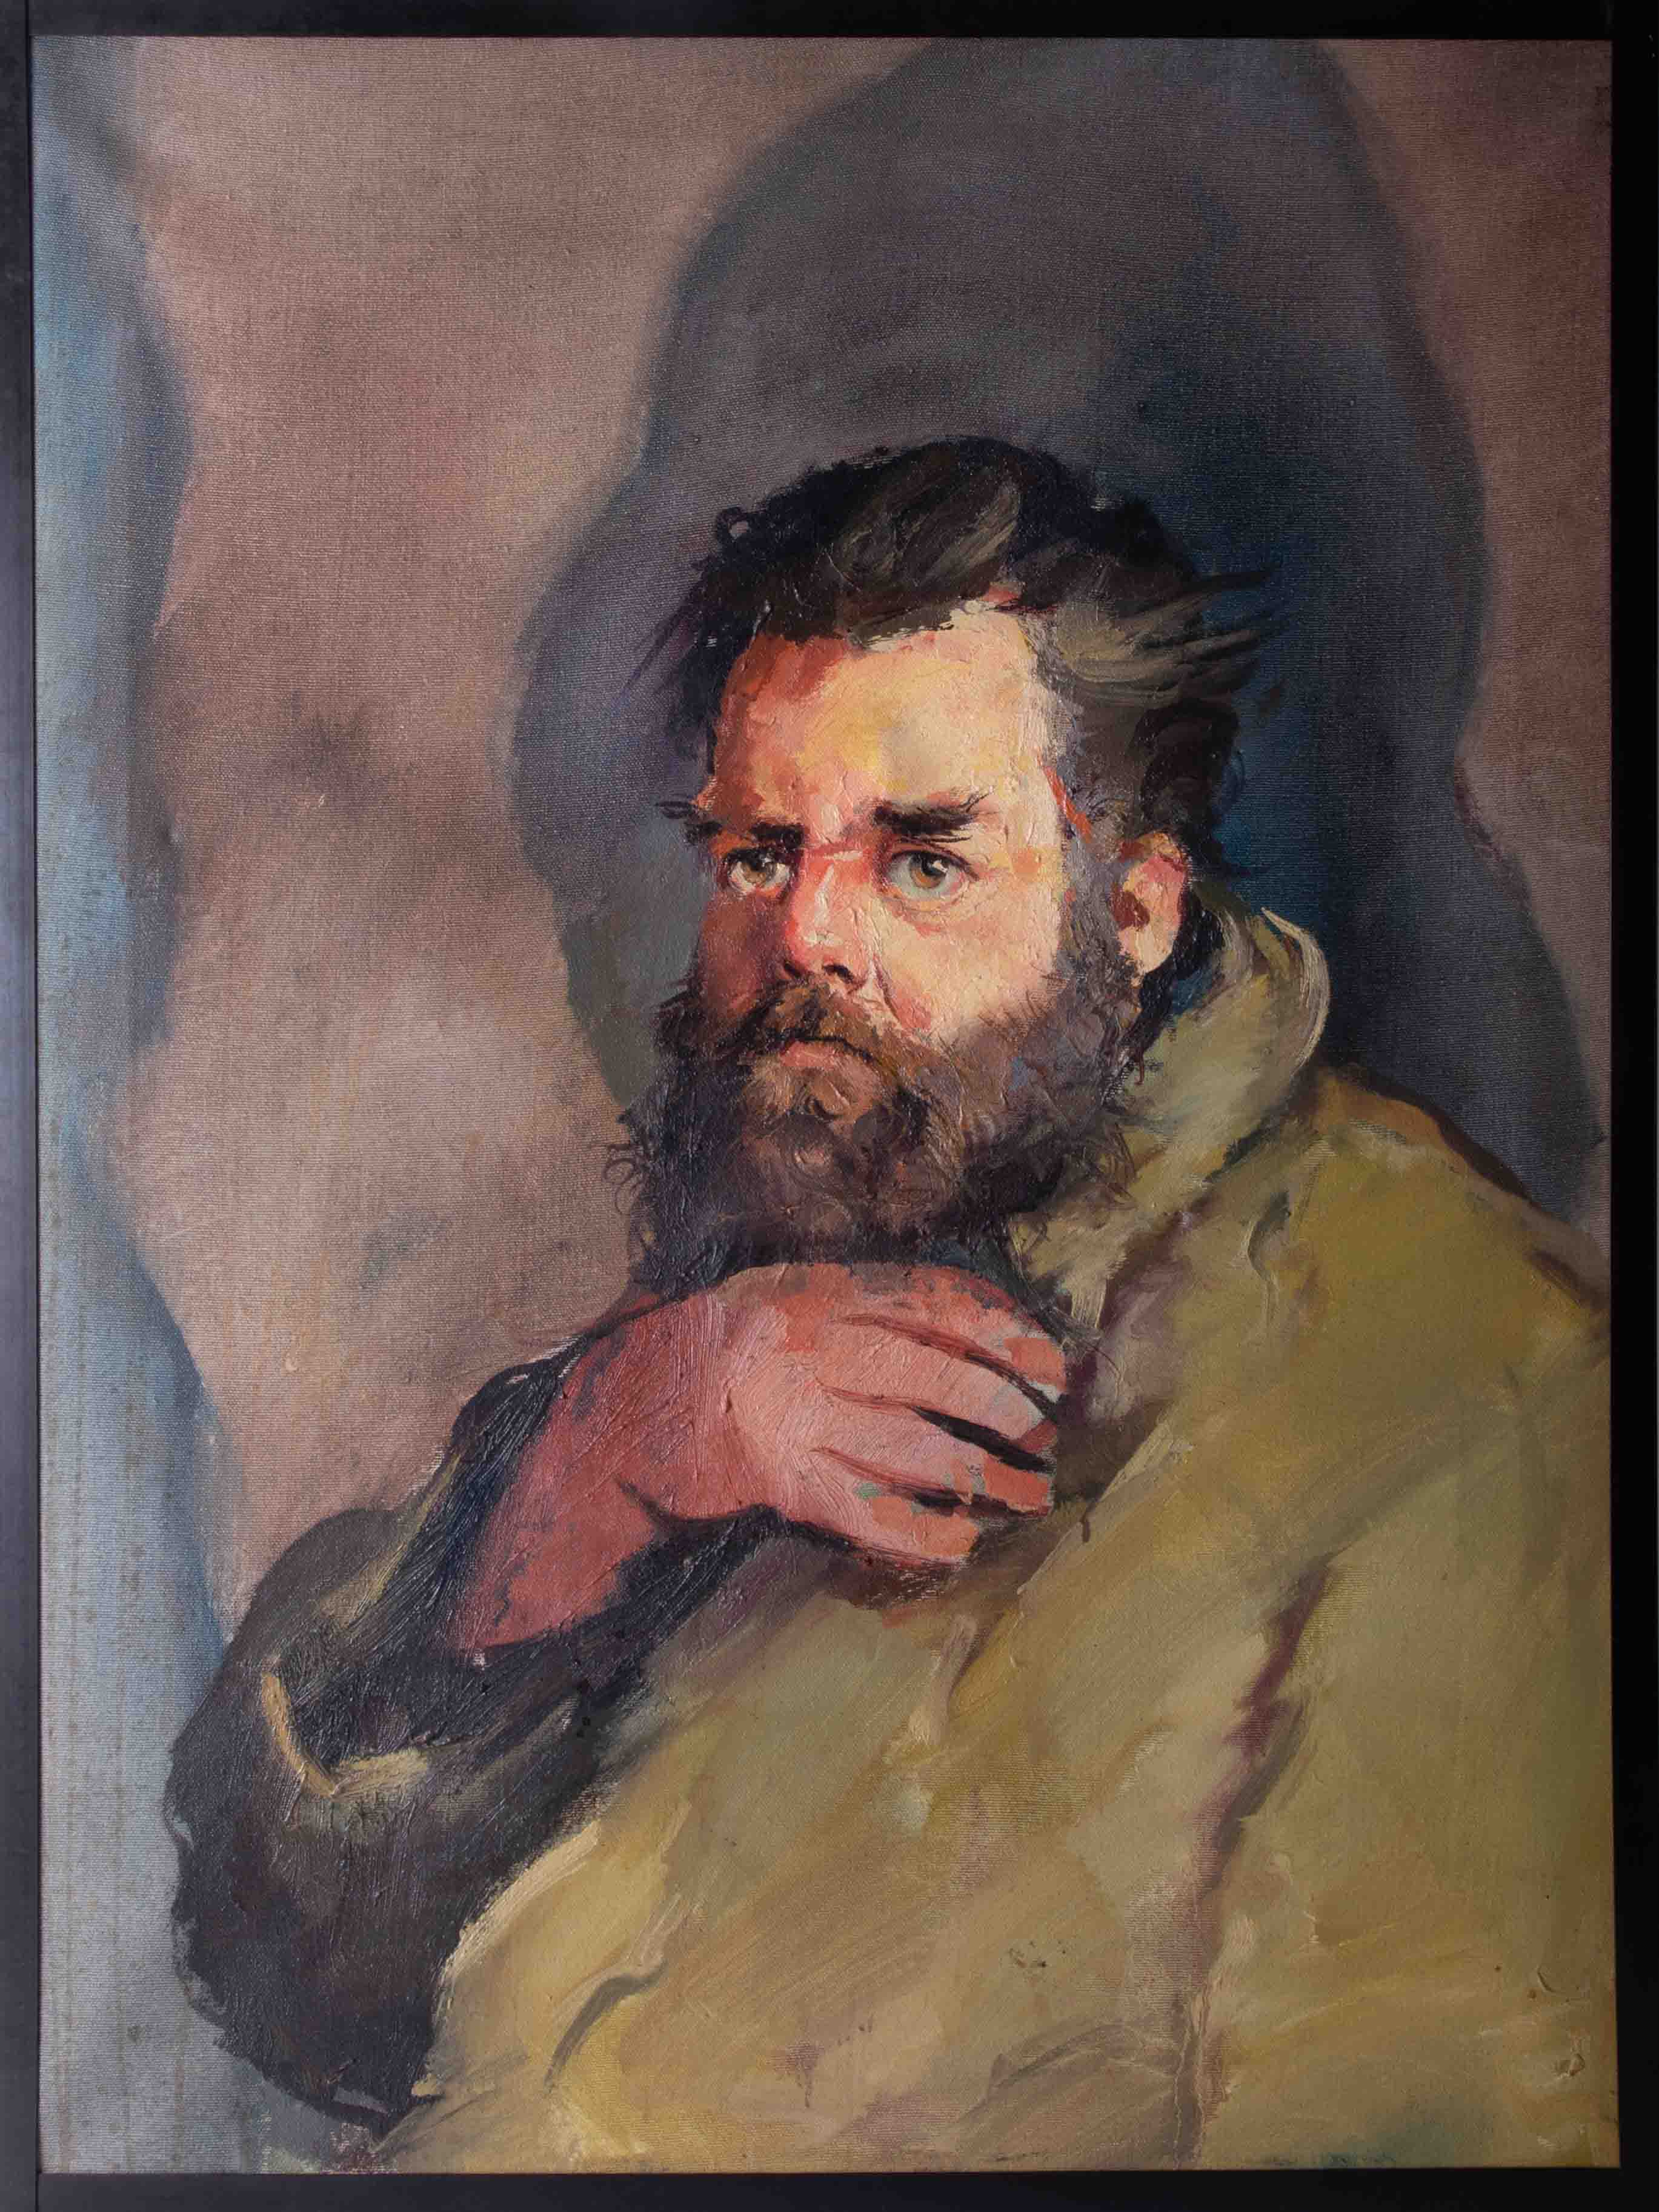 Robert Lenkiewicz (1941-2002) 'Big Pete' oil on canvas, with original artists title label on